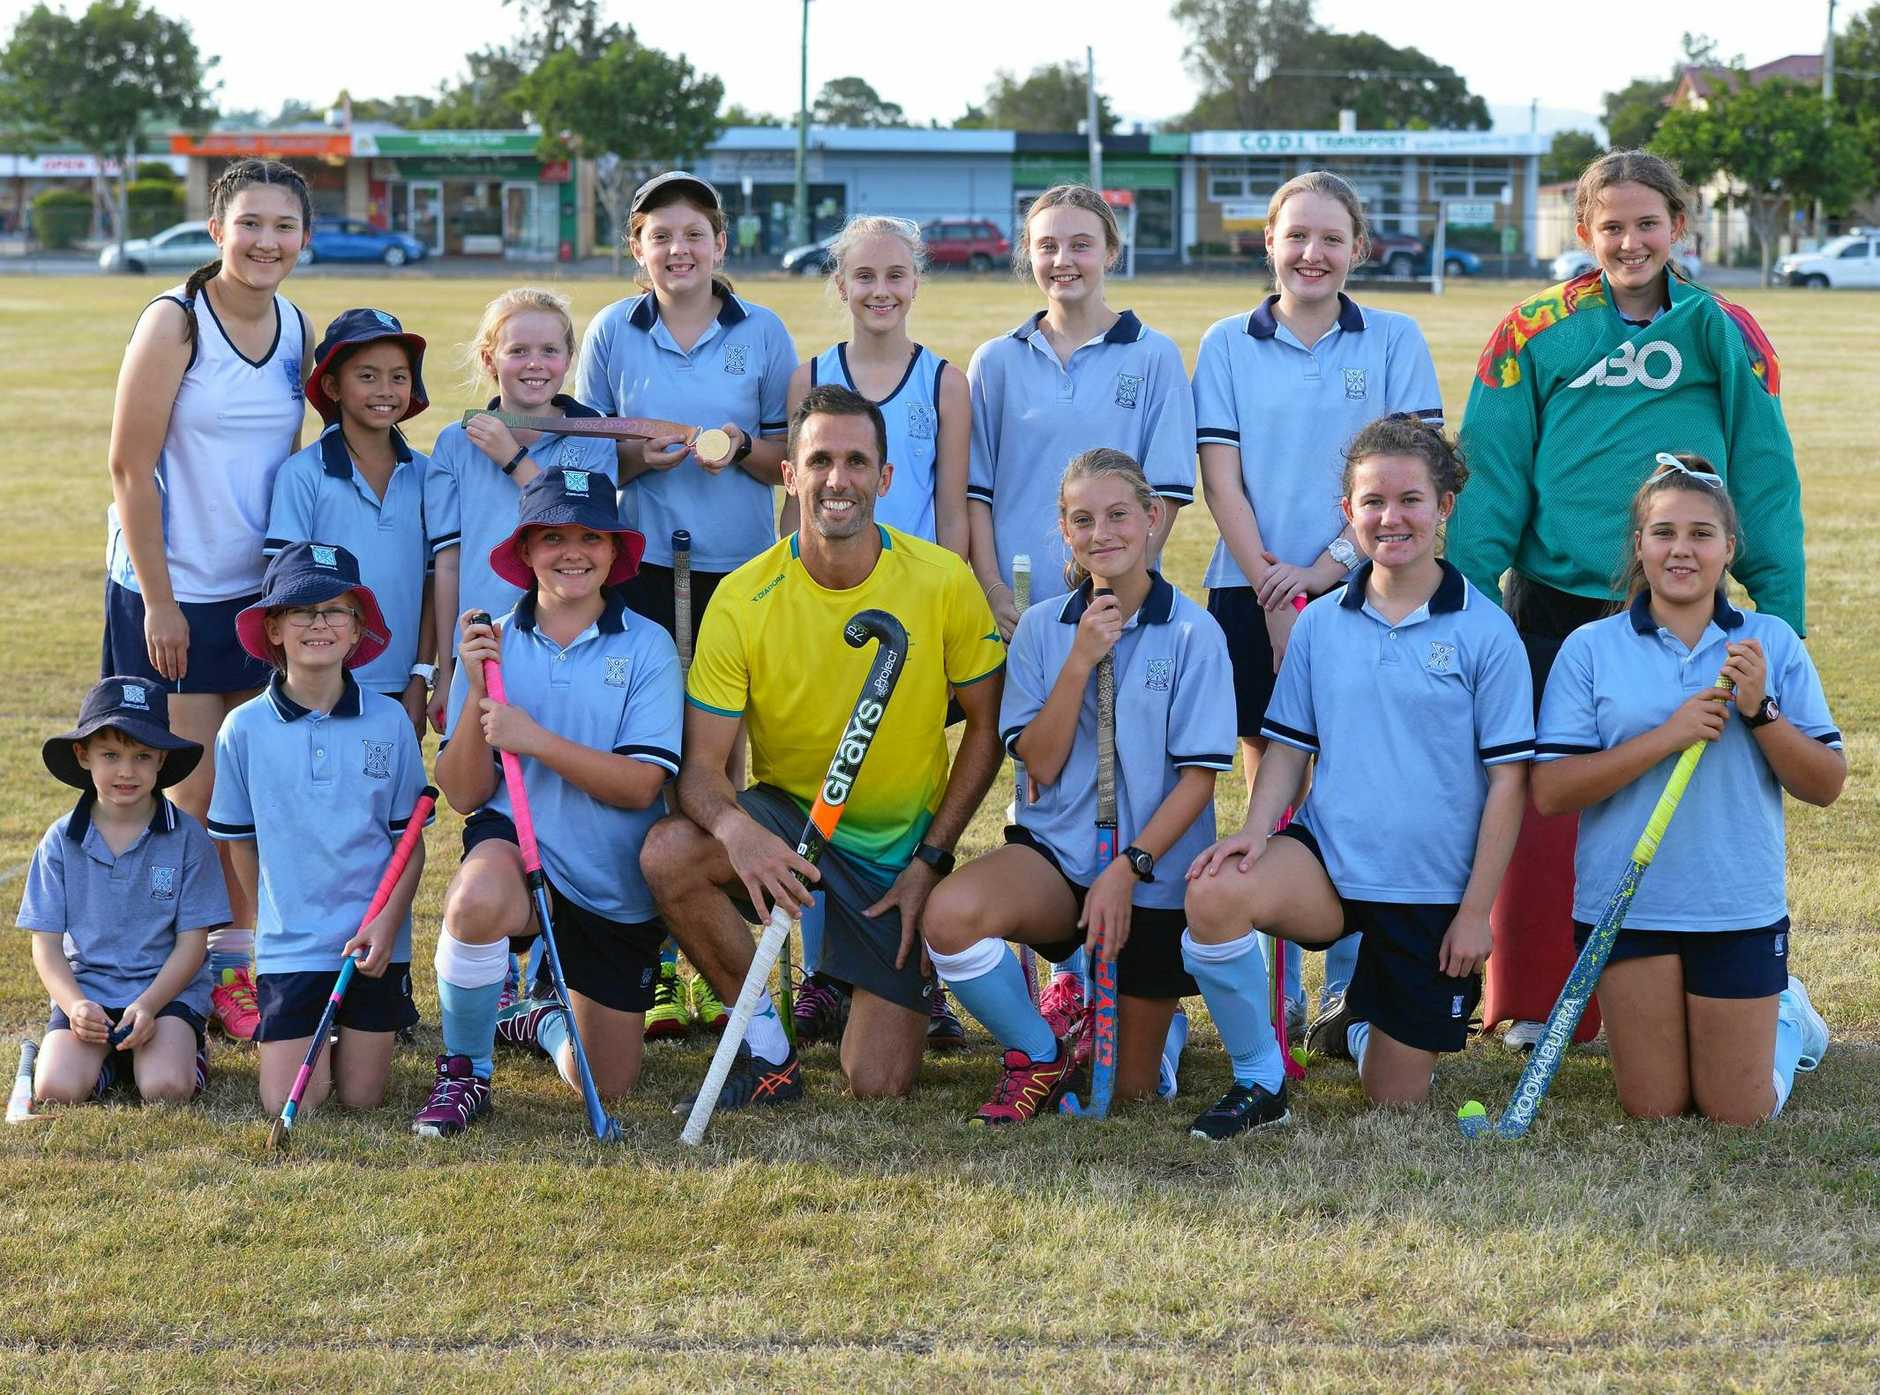 Former Australian hockey captain Mark Knowles was a popular visitor during coaching sessions with Ipswich Girls' Grammar School students.